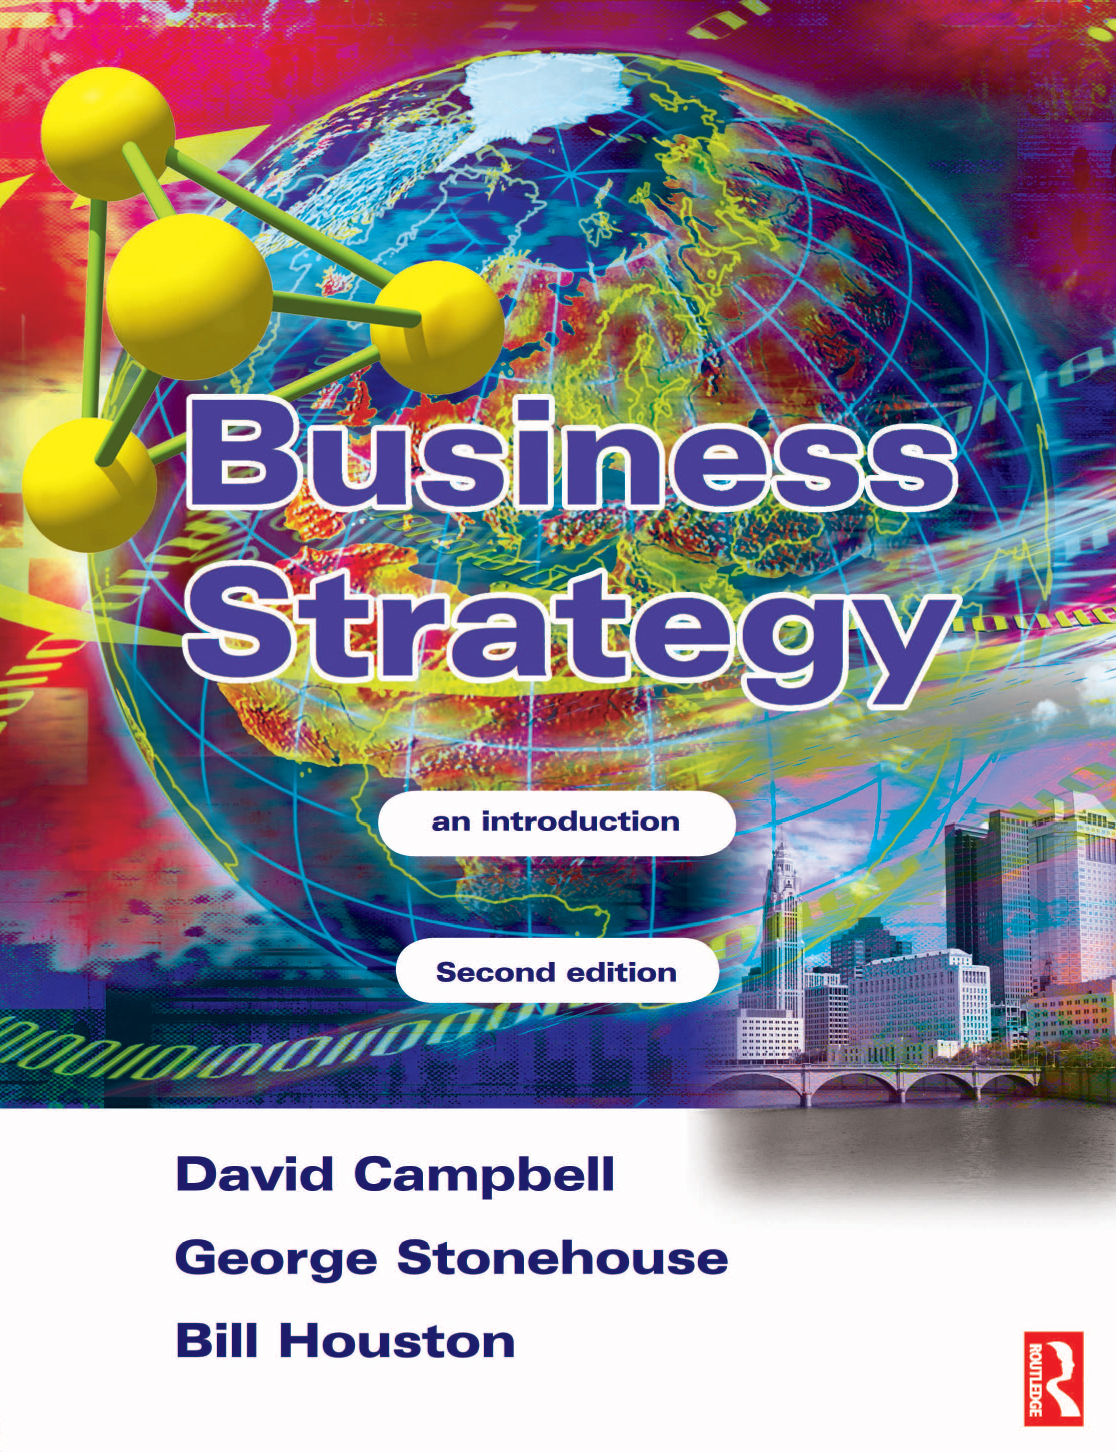 Download Ebook Business Strategy (2nd ed.) by George Stonehouse Pdf